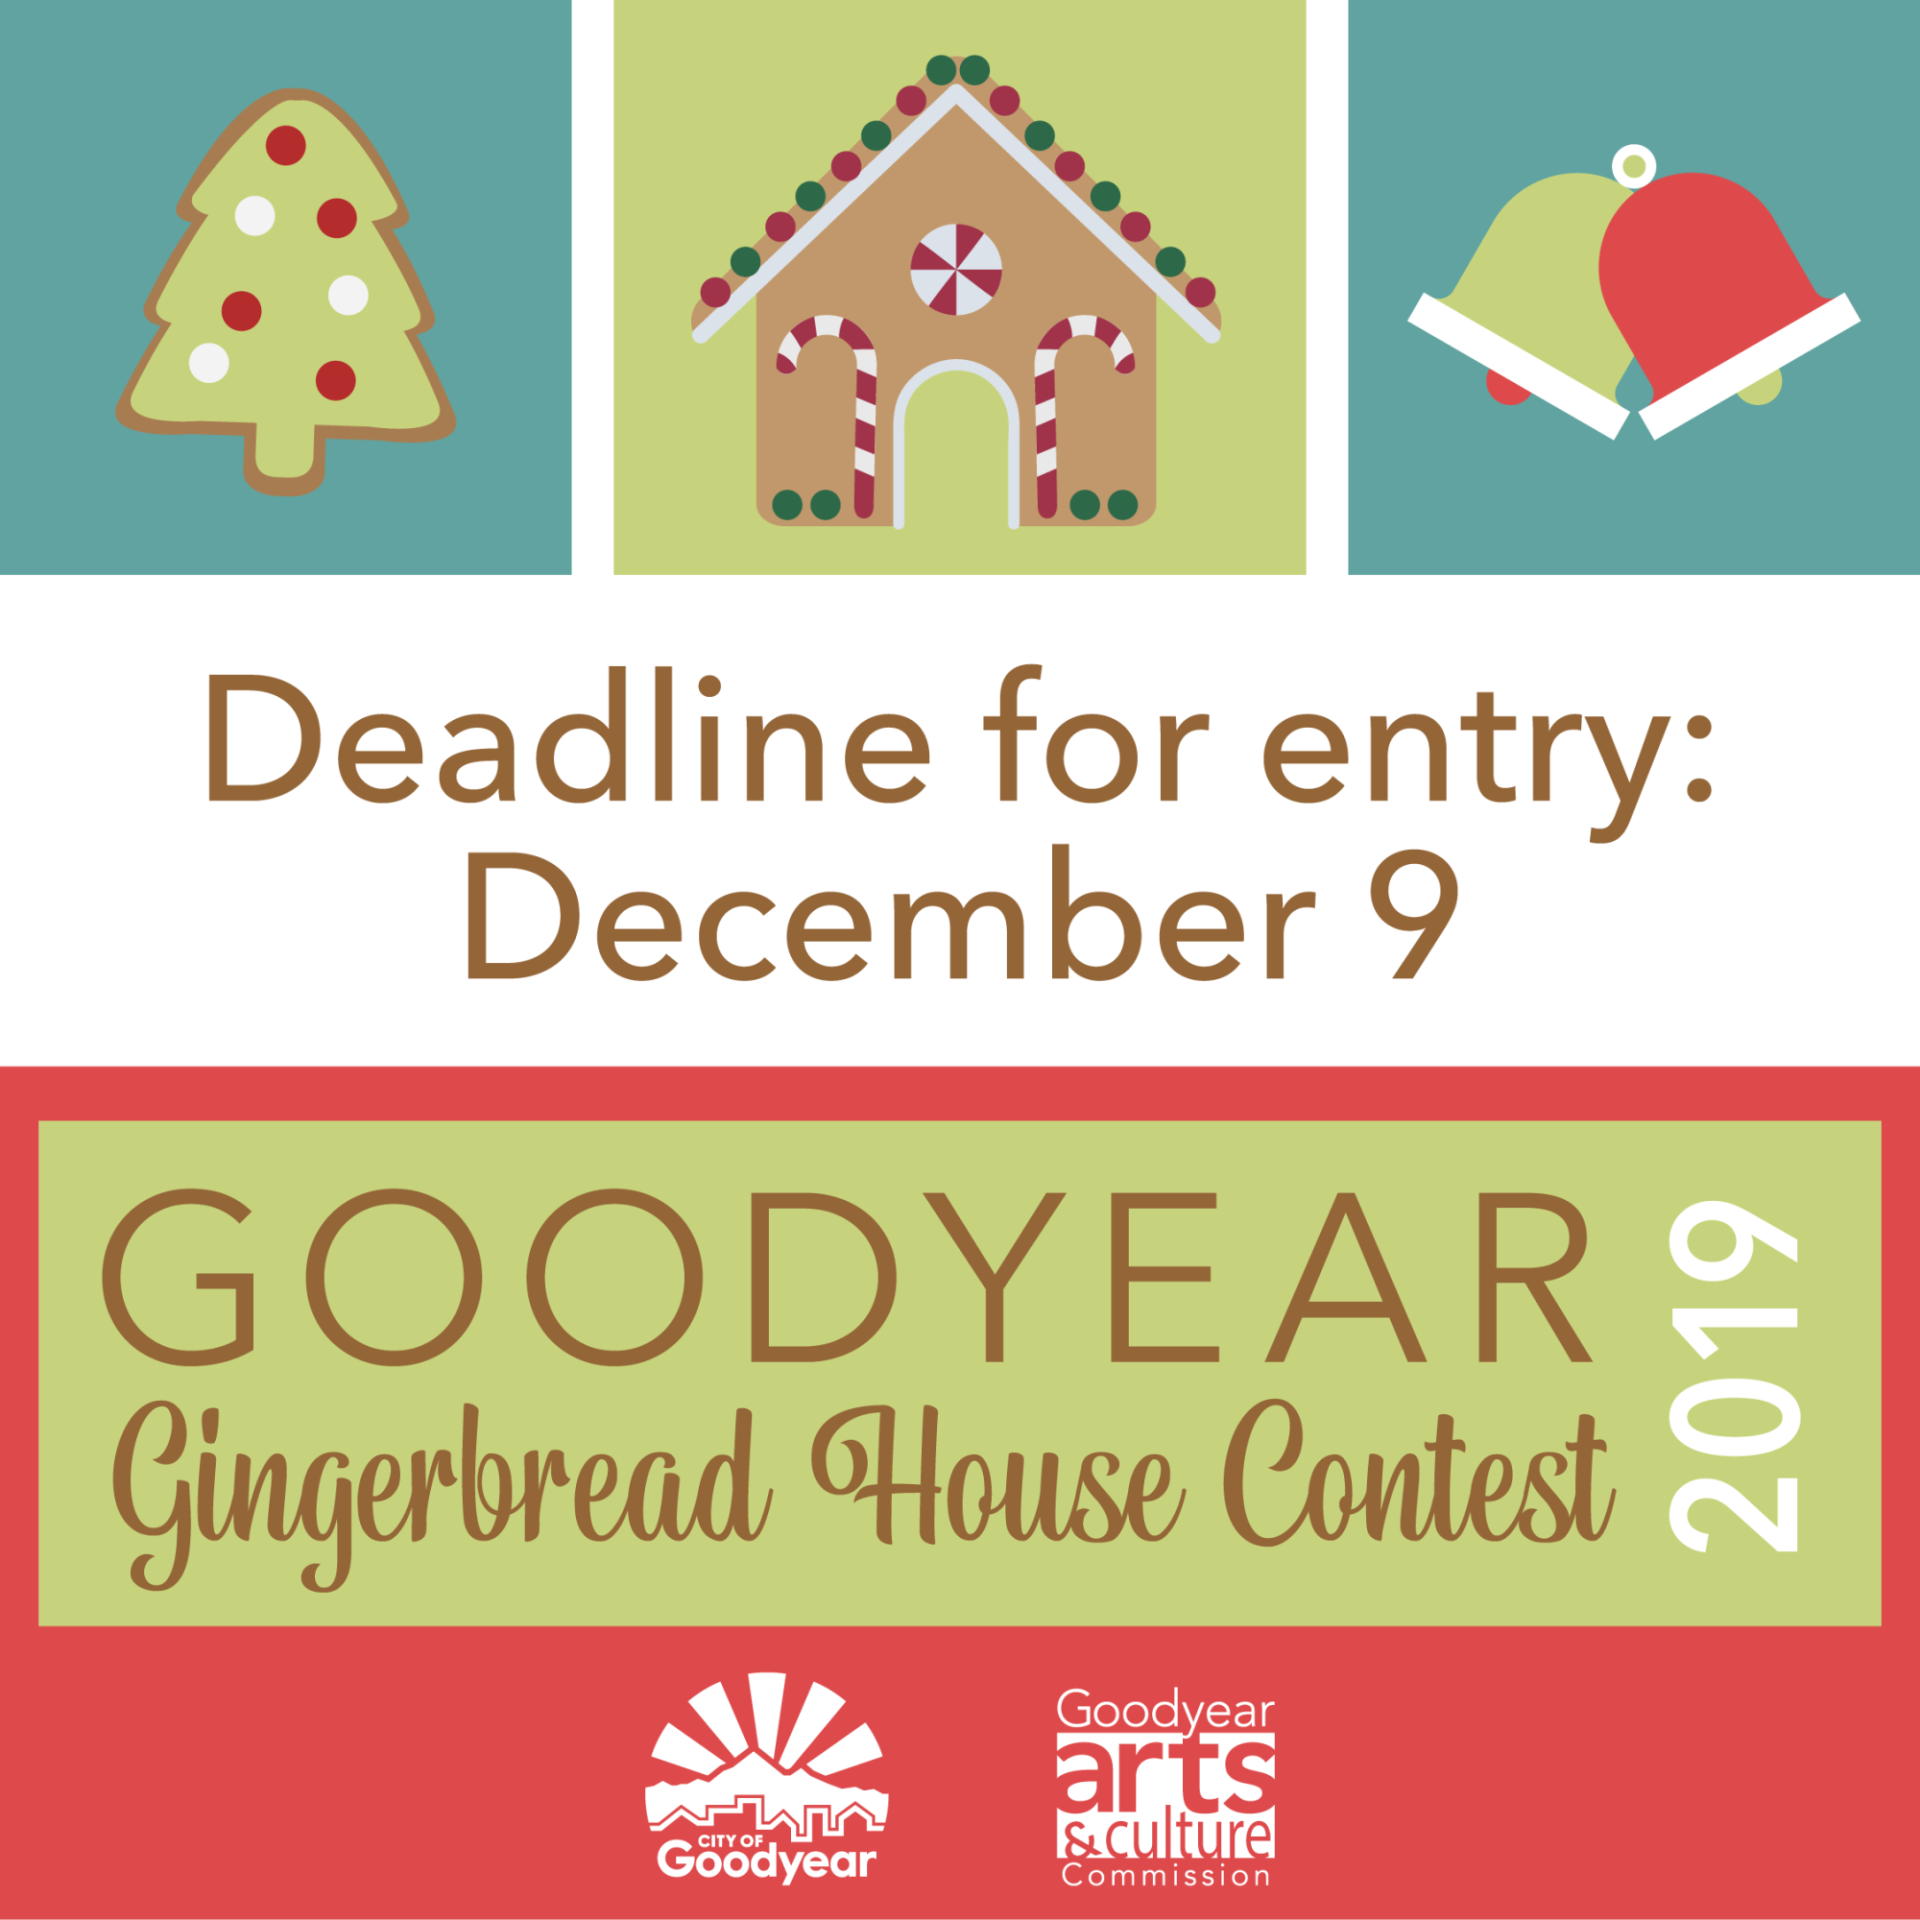 Gingerbread_House_Contest_1080x1080